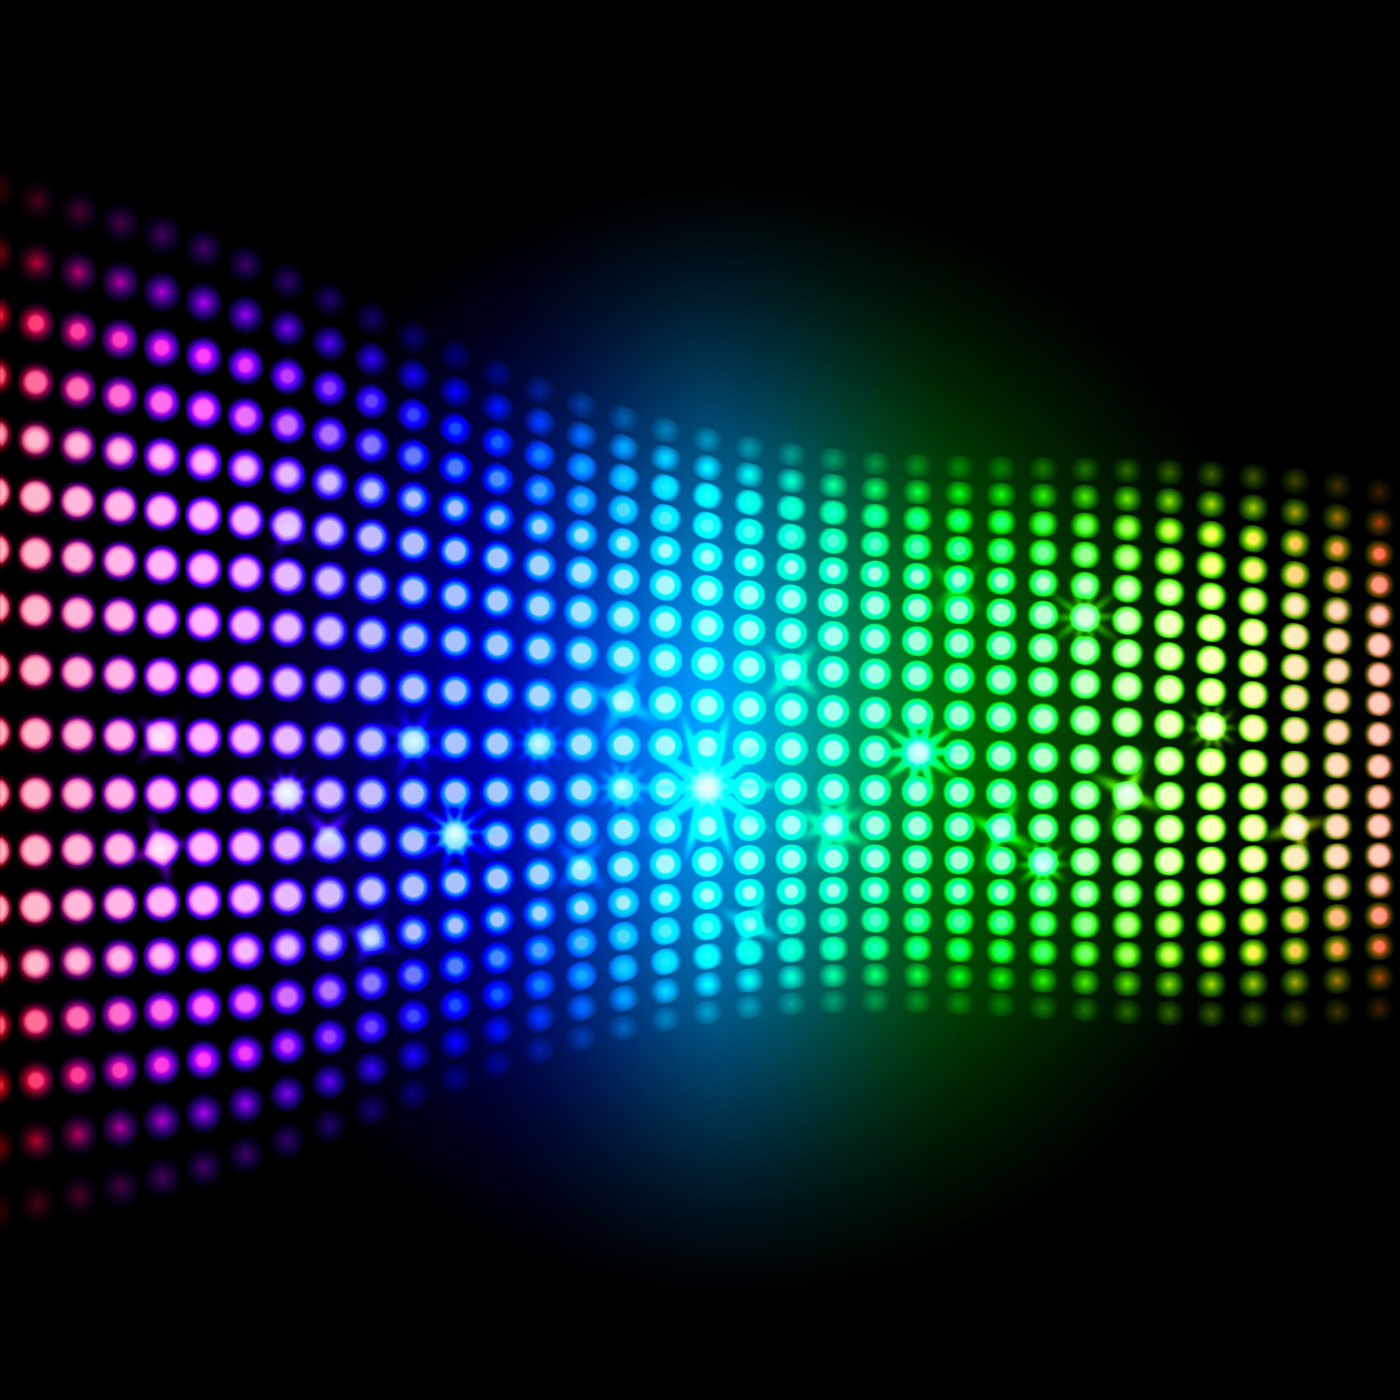 Rainbow light squares background shows colourful digital art photo